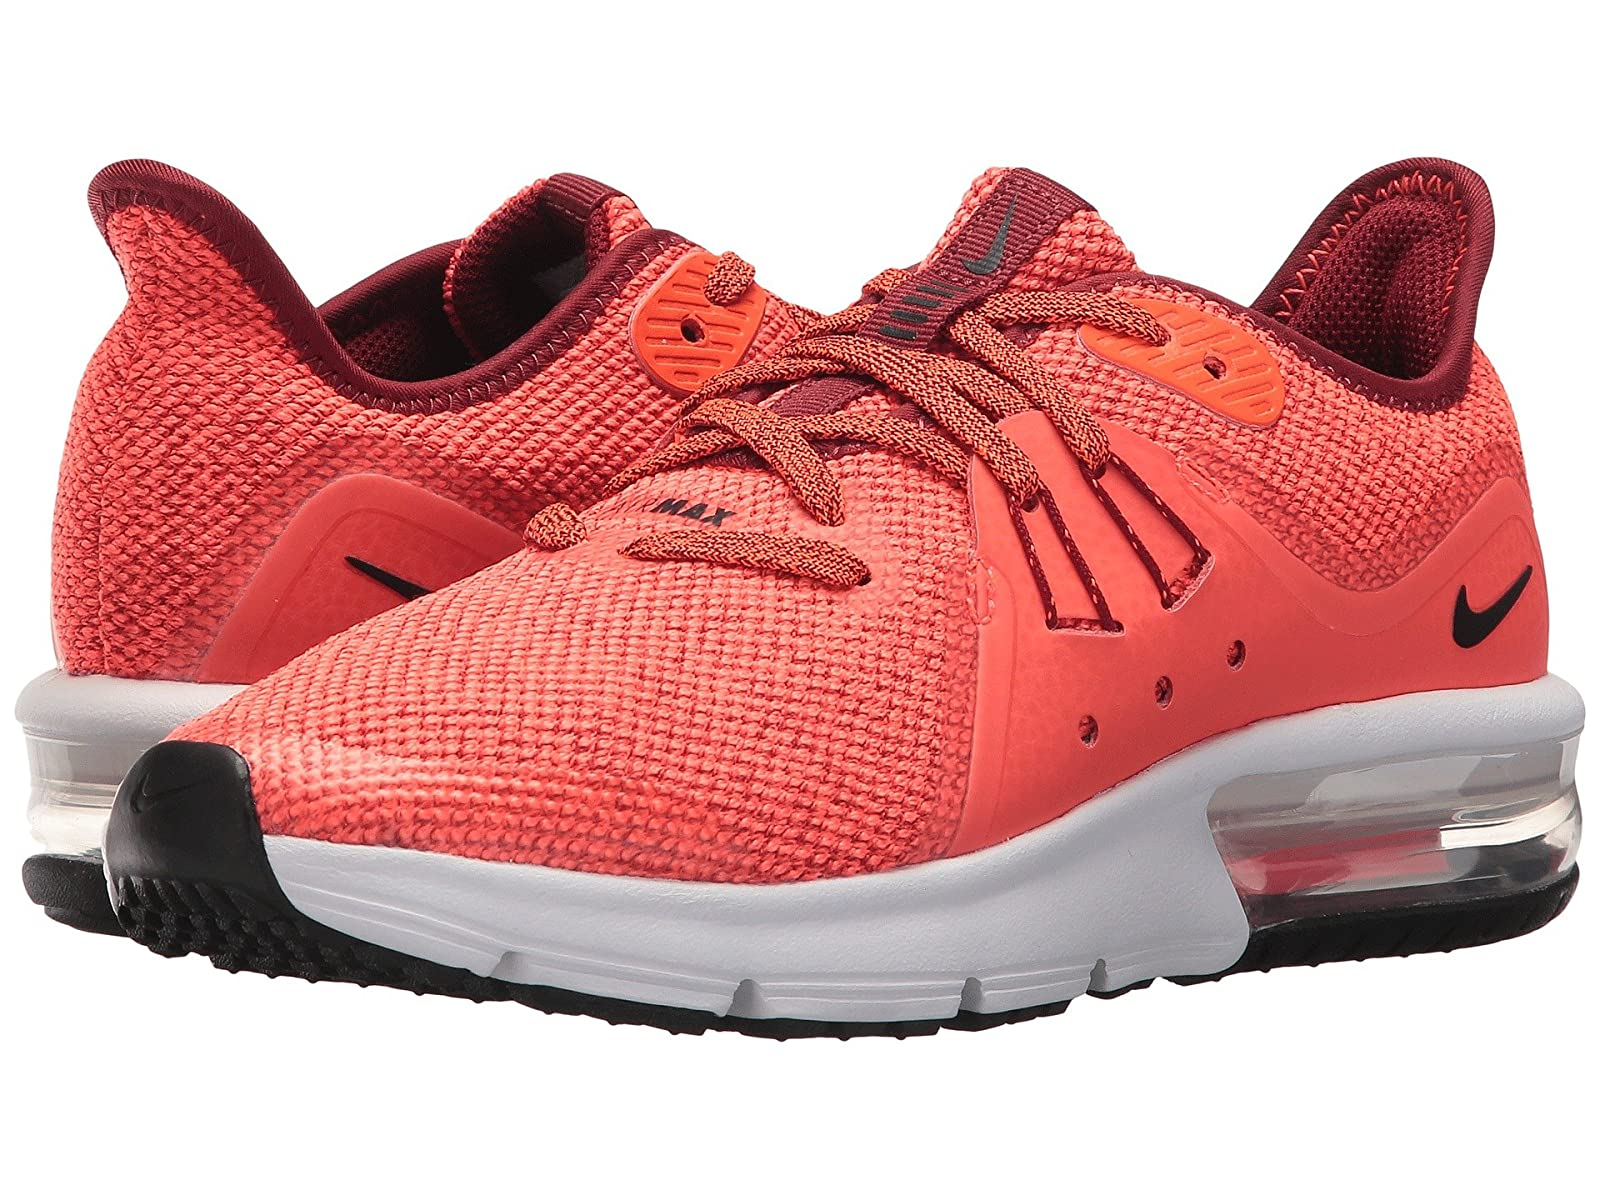 Nike Kids Air Max Sequent 3 (Big Kid)Atmospheric grades have affordable shoes